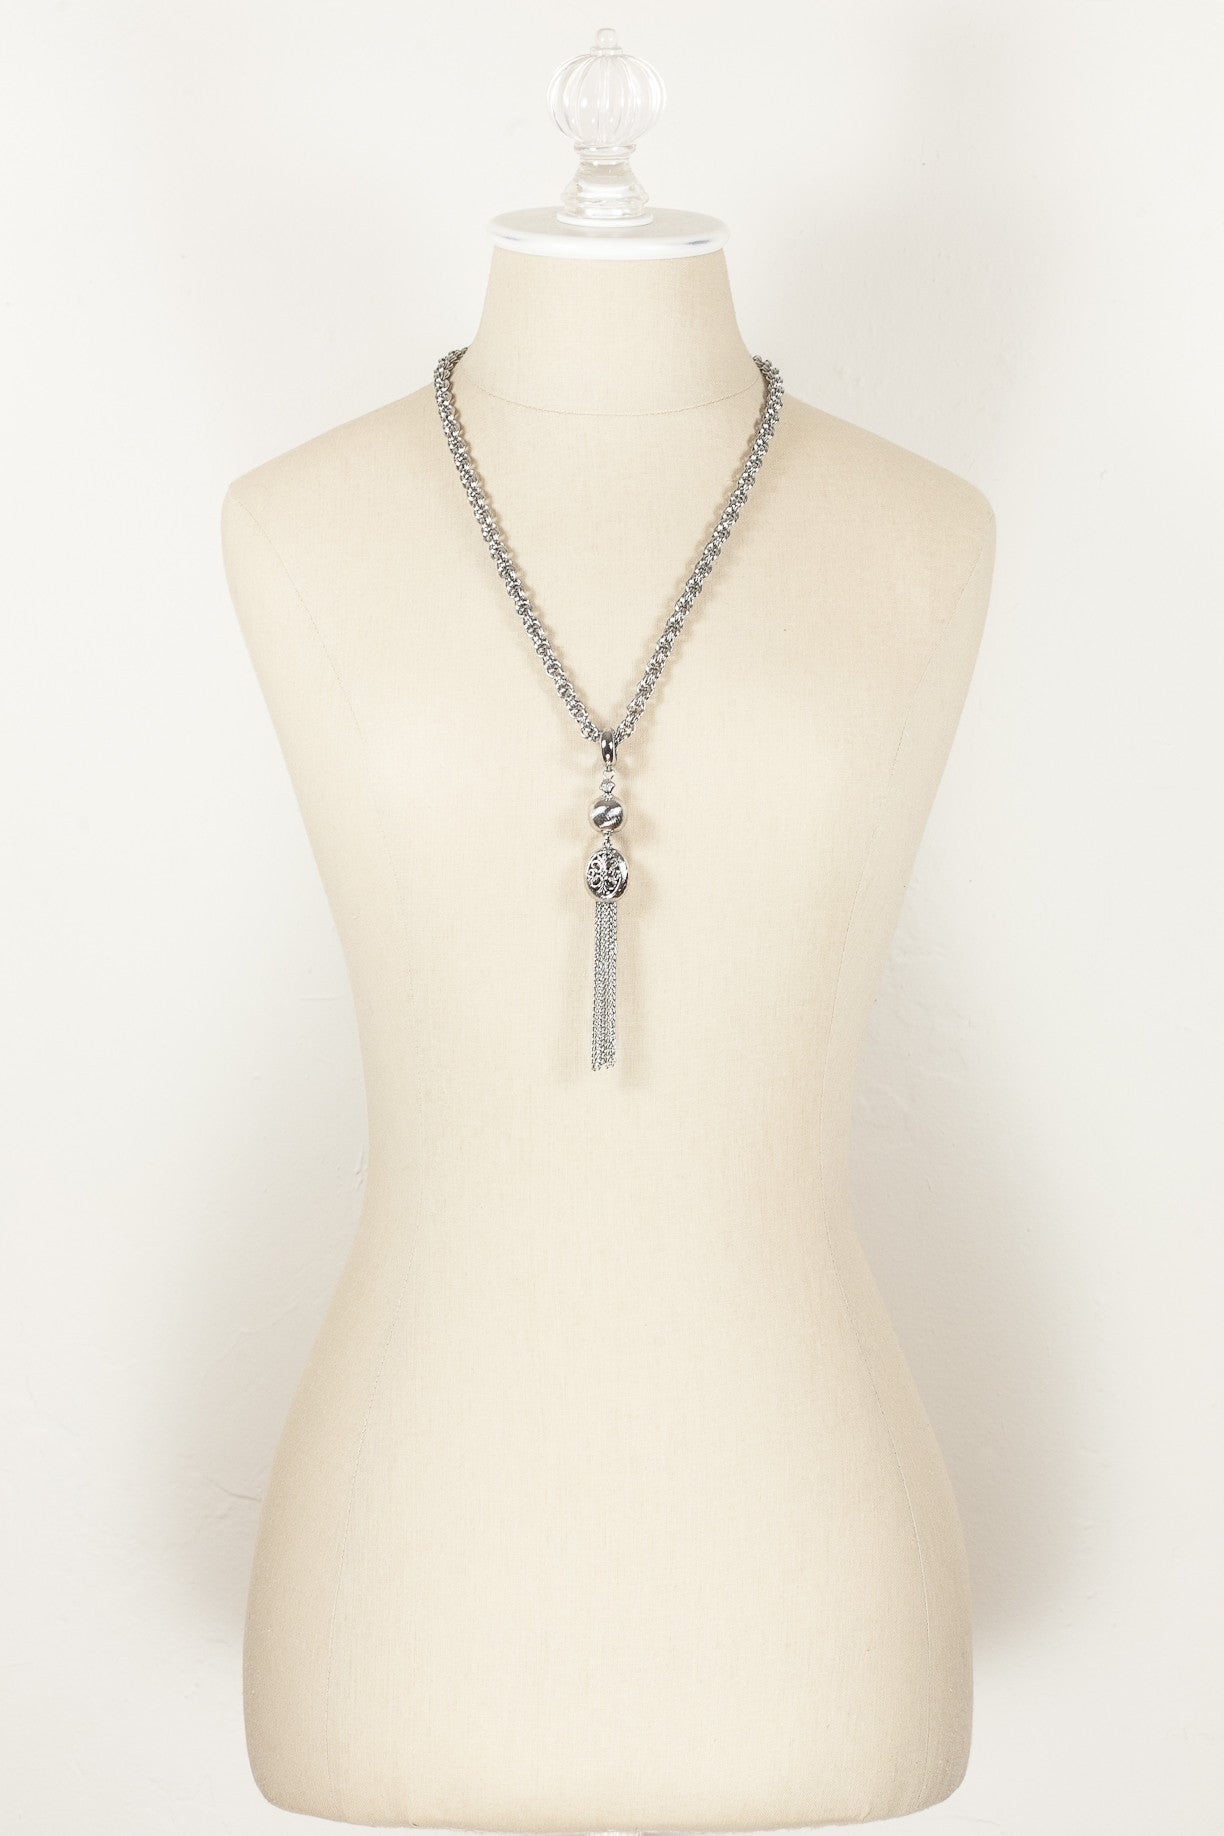 50's__Taylor Ltd.__Classic Silver Tassel Necklace